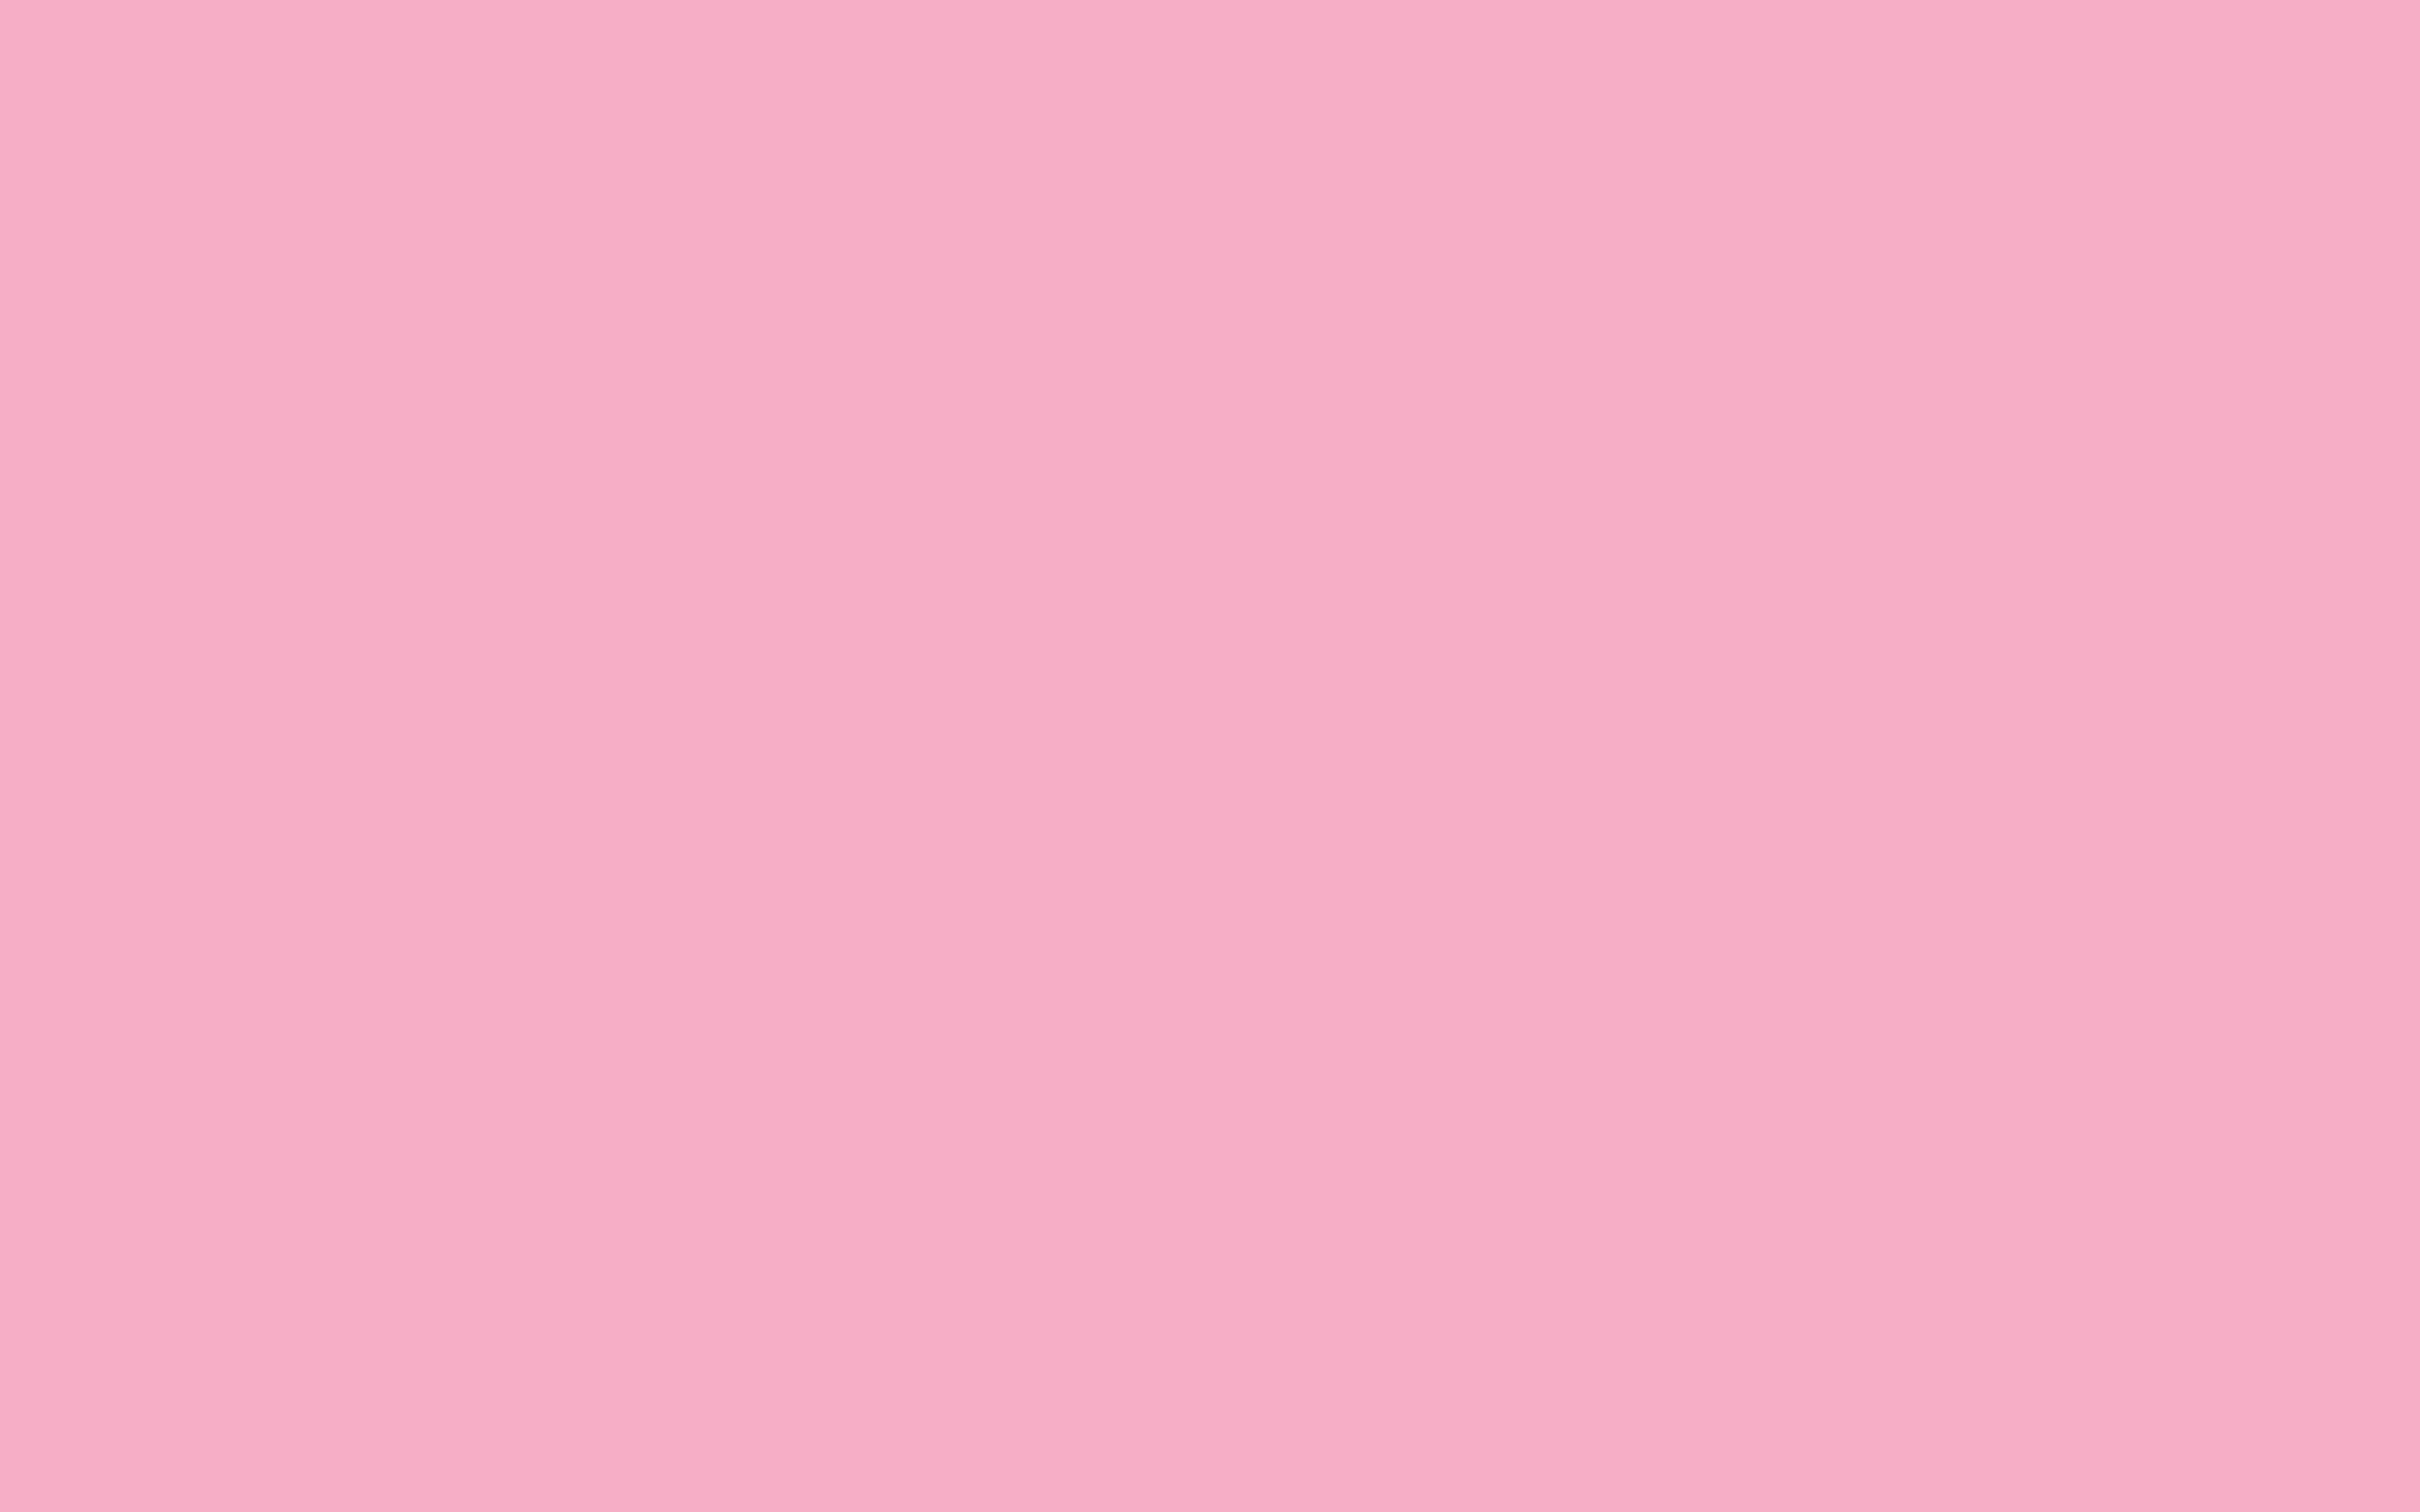 2880x1800 Nadeshiko Pink Solid Color Background